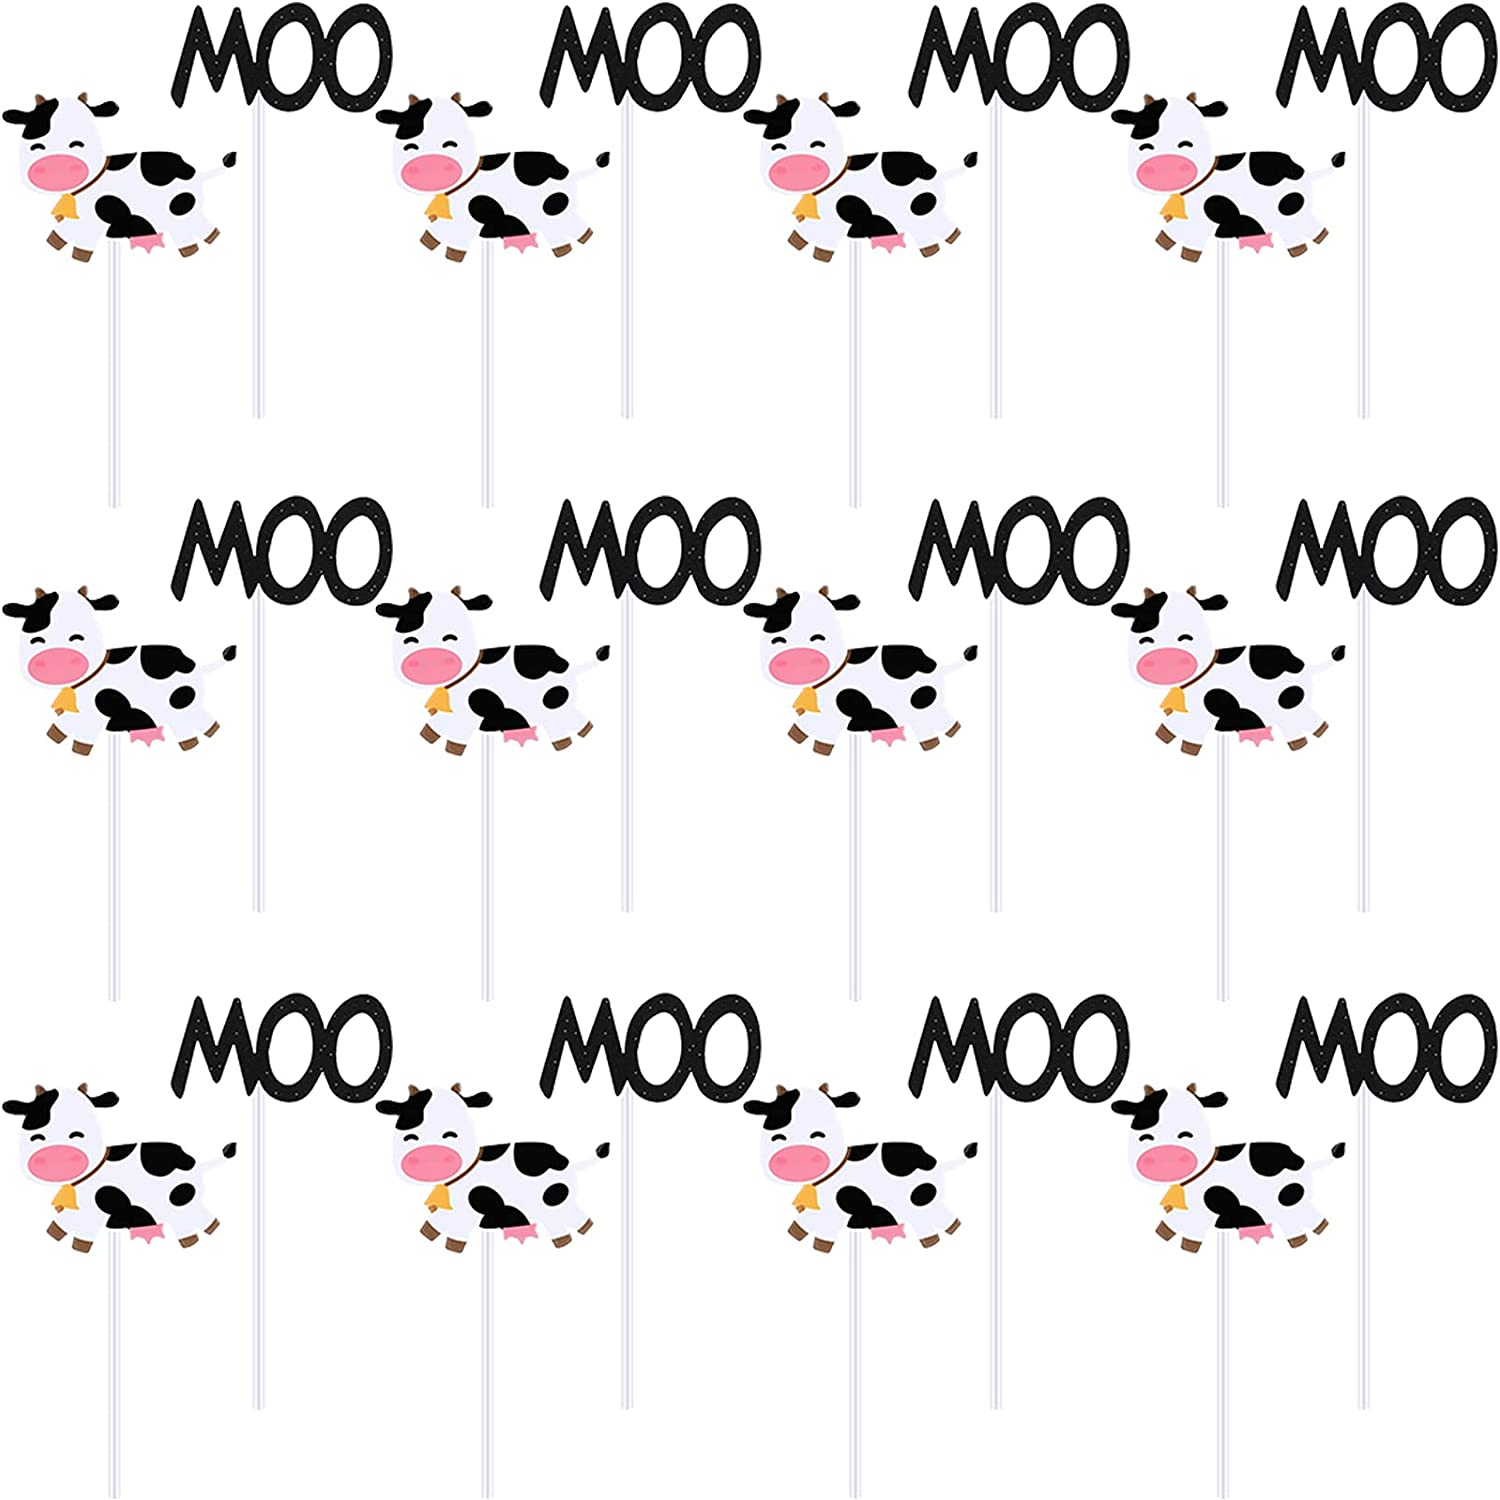 Fainne 72 Pieces Cow Cupcake Toppers MOO Cake Decorations Animal Farm Themed Cupcake Topper Pick for Kids Boy Girl Birthday Party Supplies